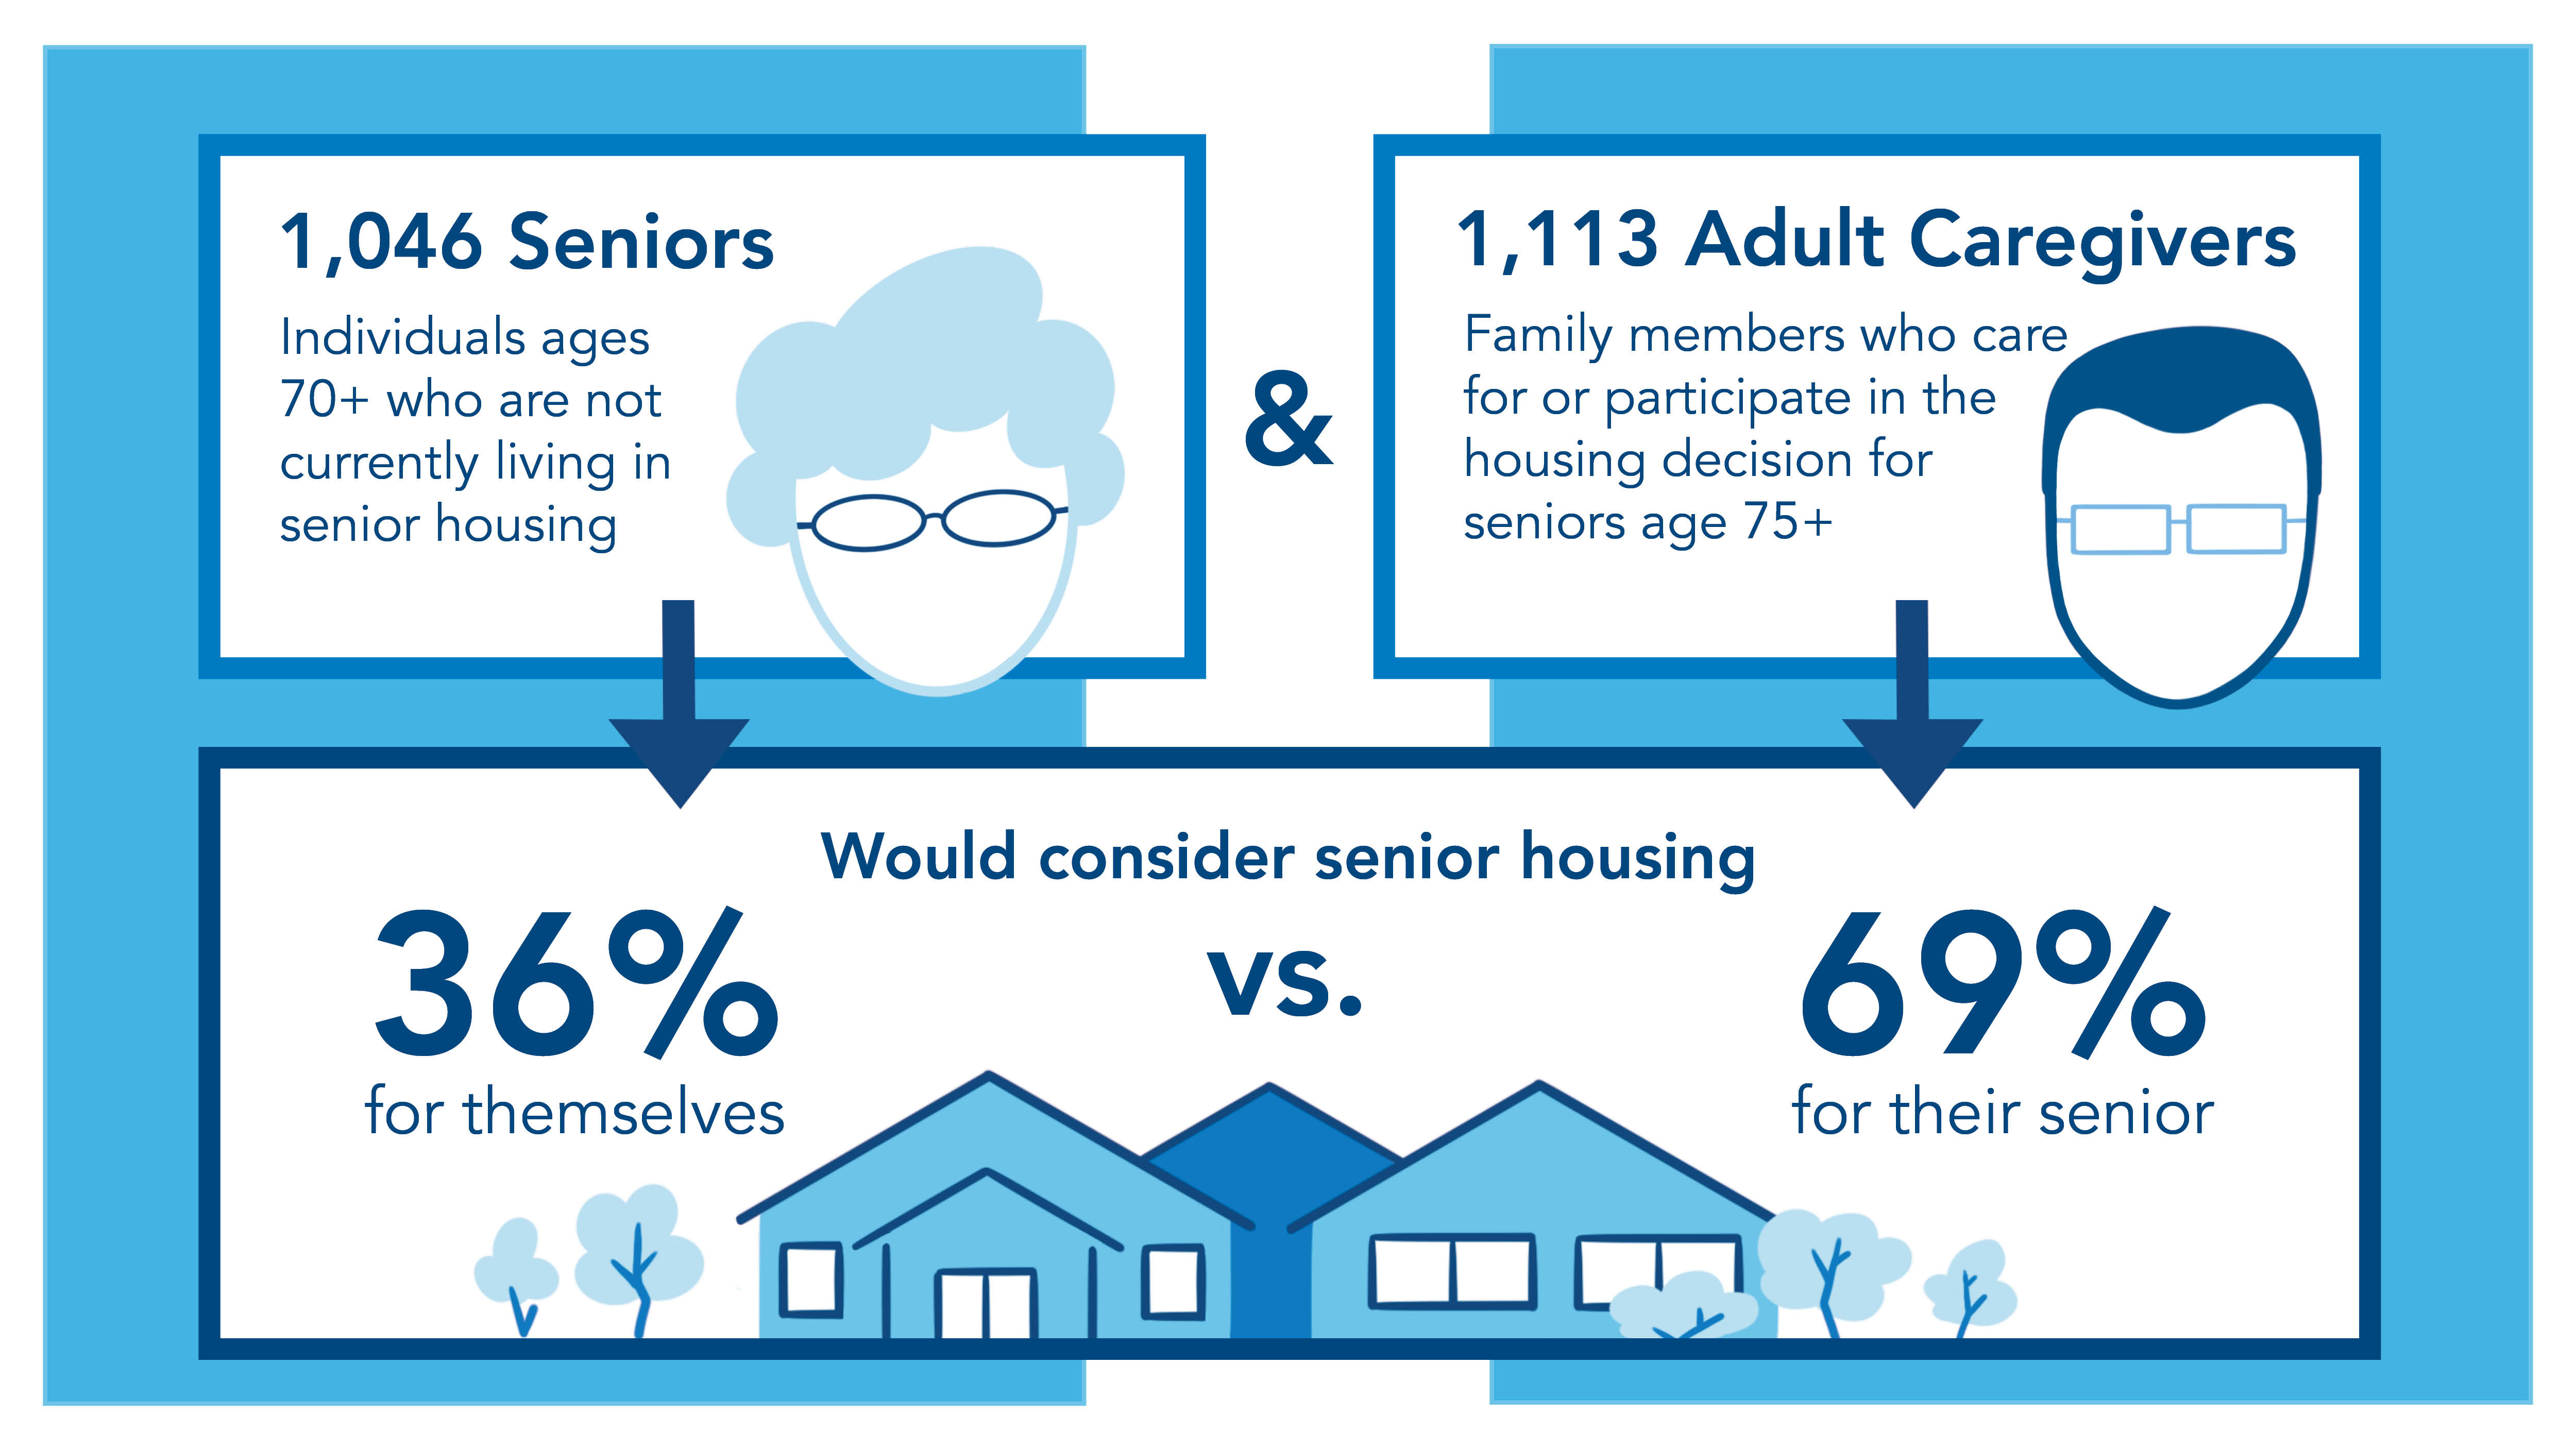 How COVID-19 Has Shaped Perceptions of Senior Housing